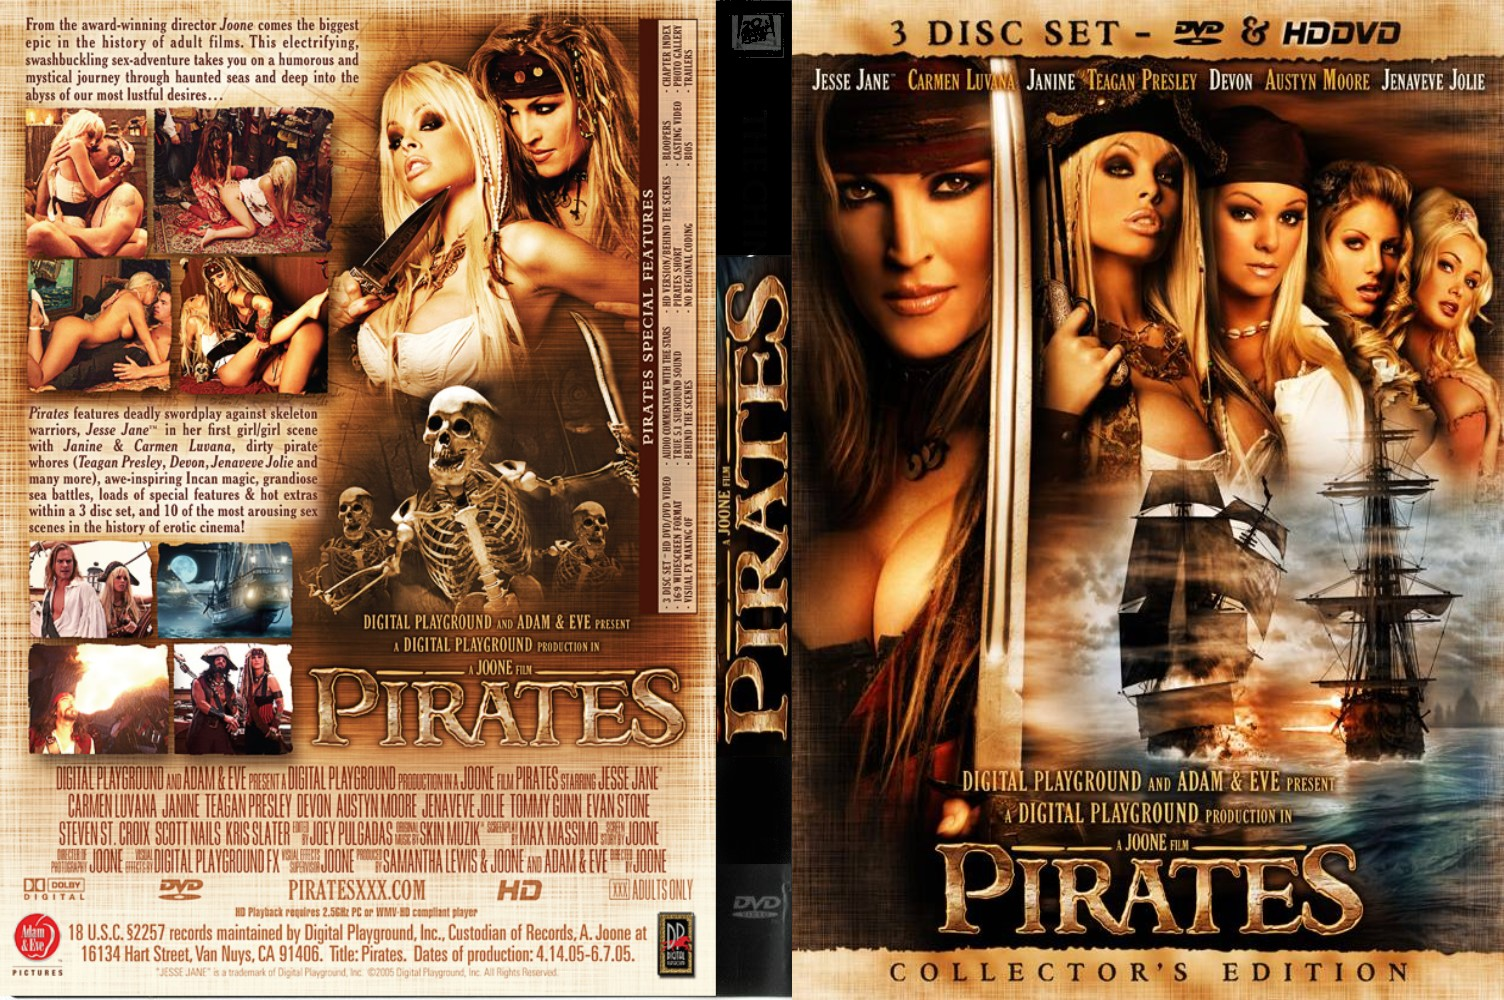 Pirates sex adult video watch